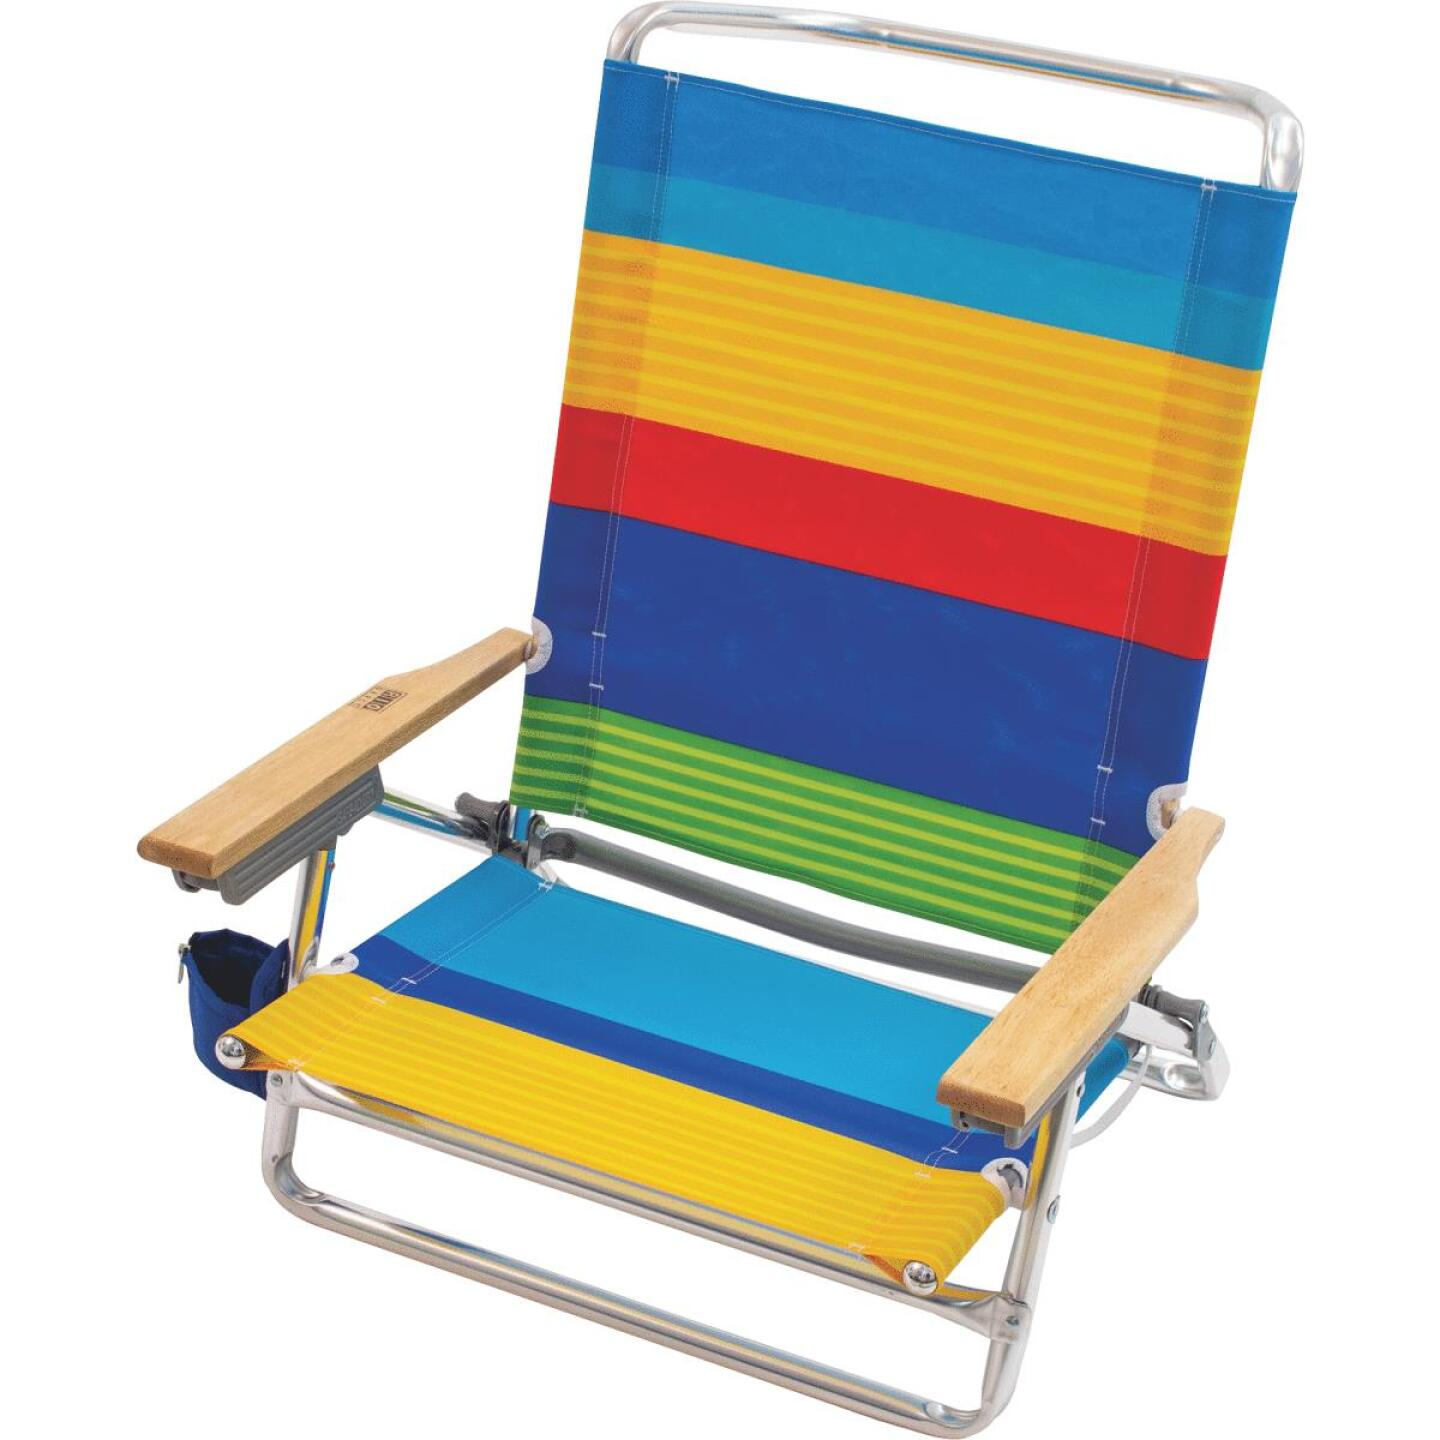 Rio Brands 5-Position Aluminum Lay Flat Beach Chair Image 4